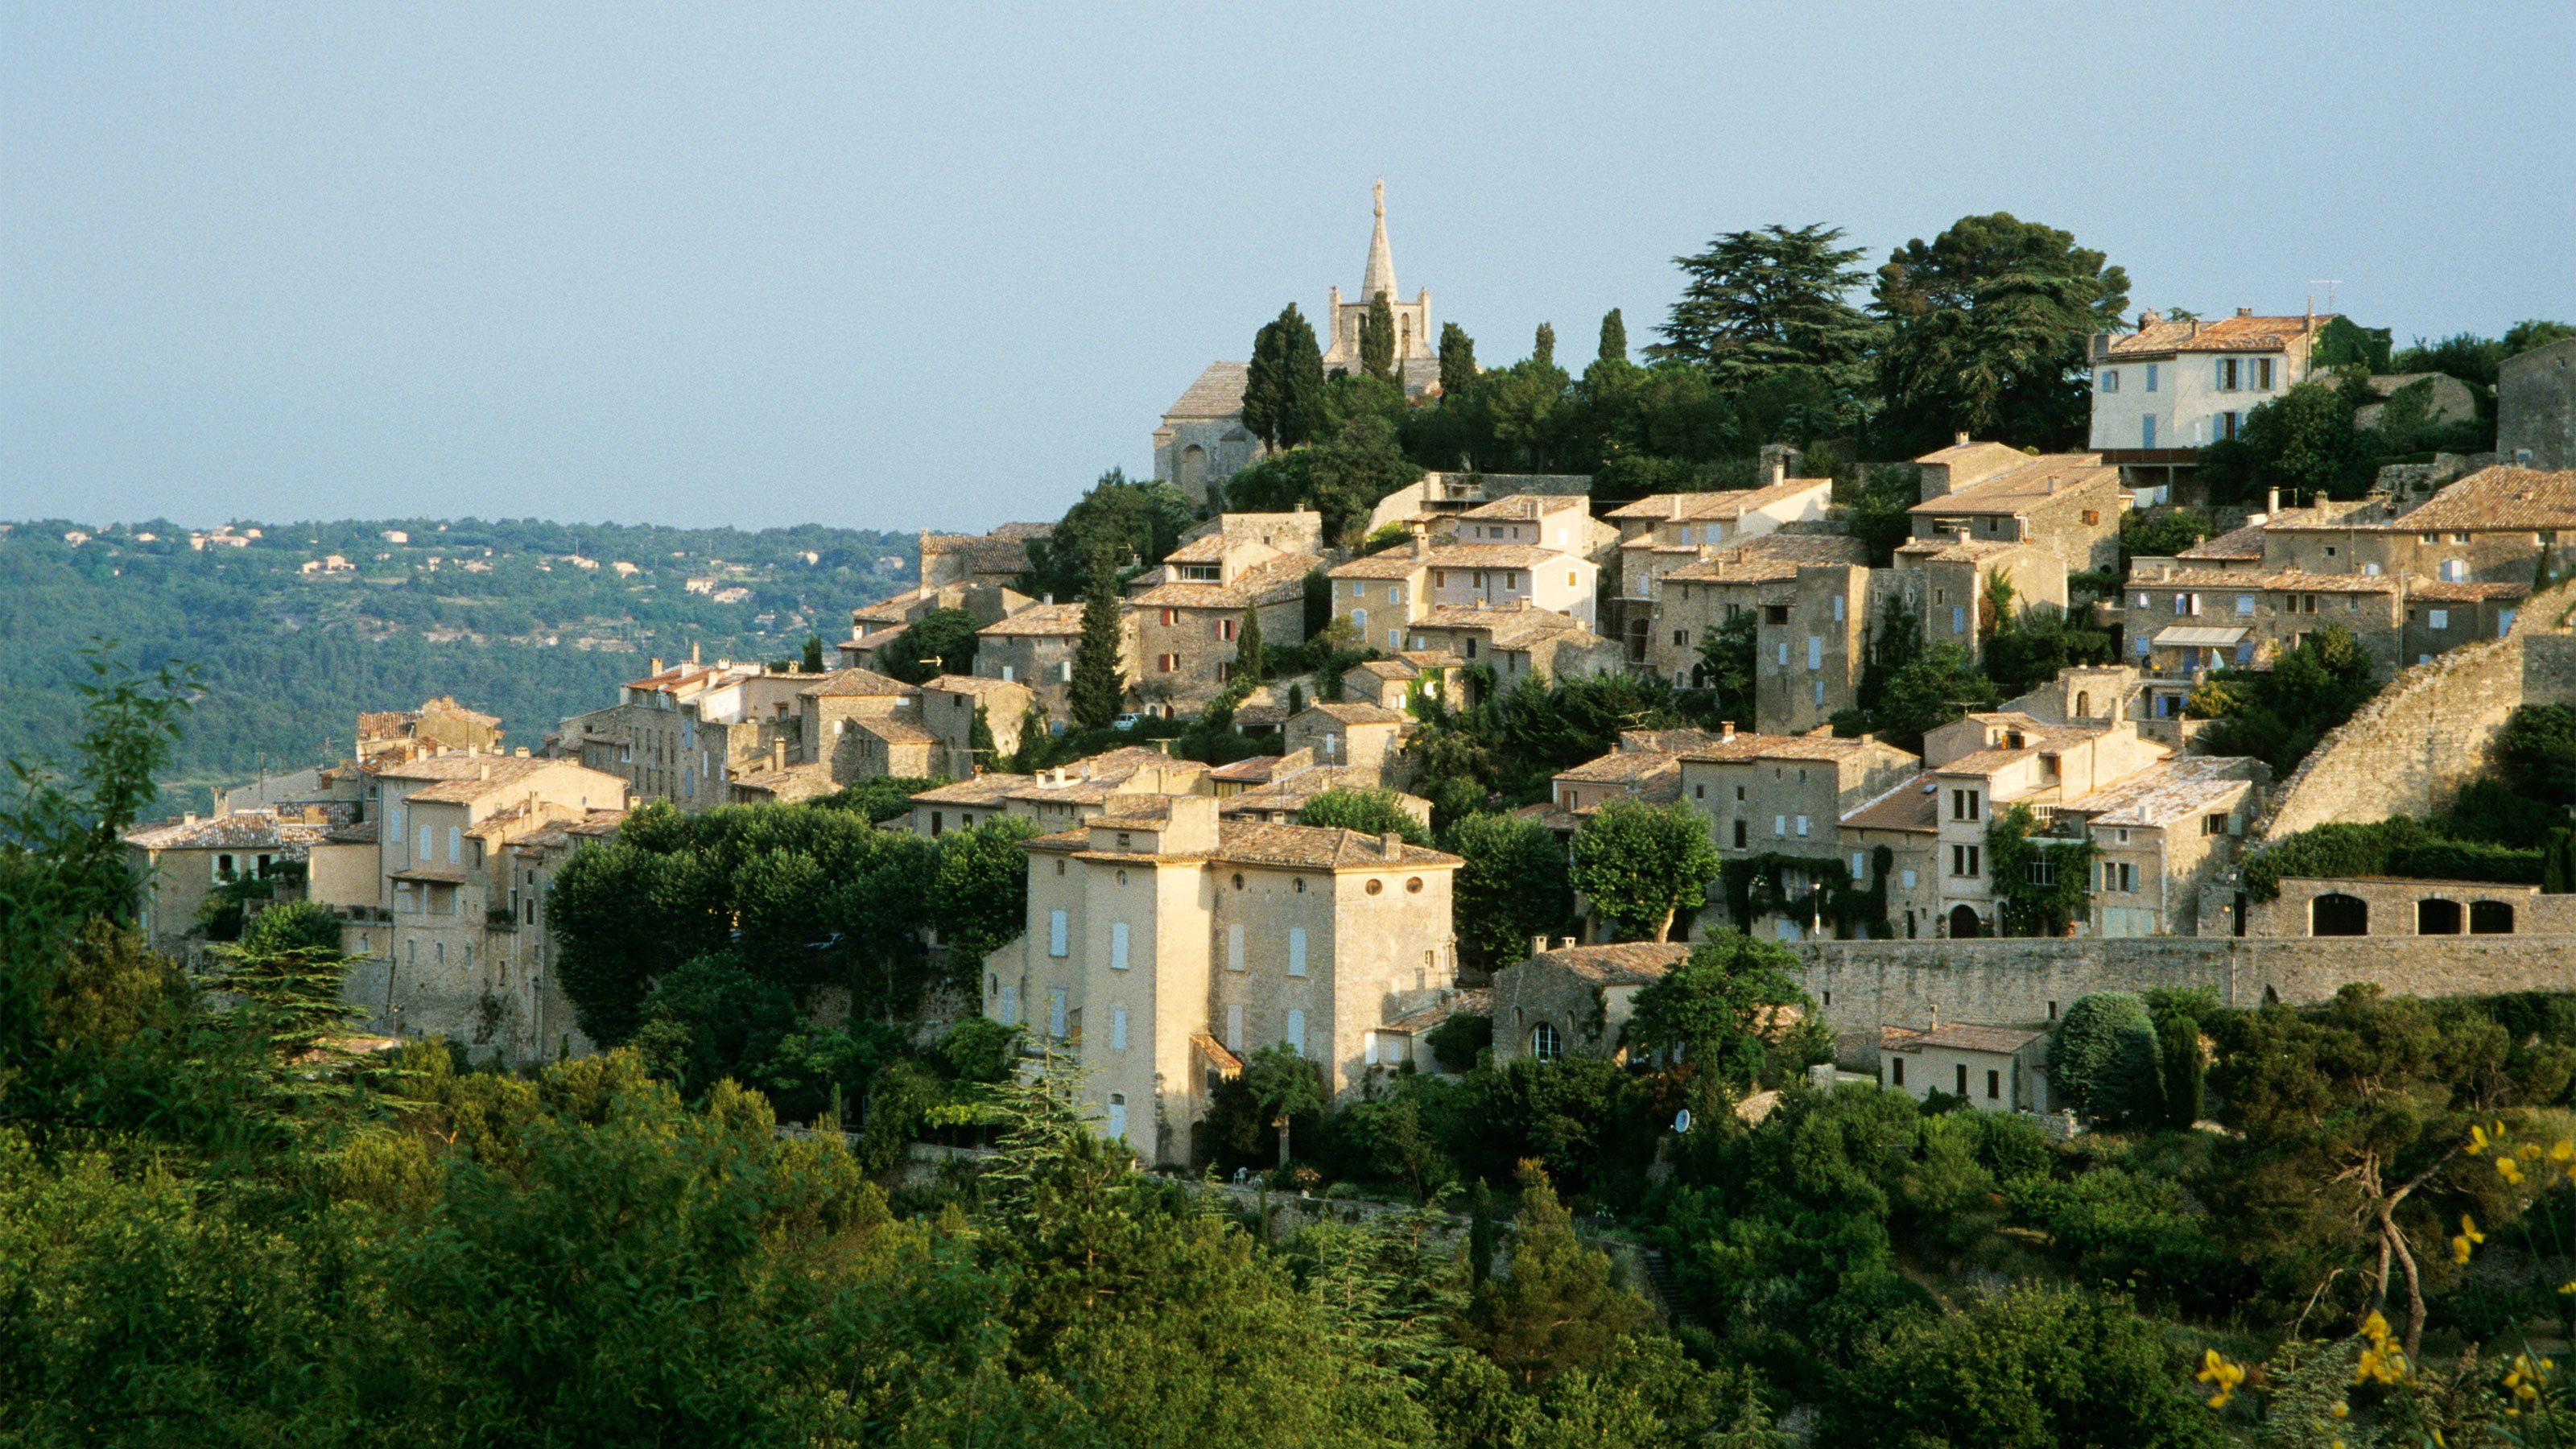 Close view of the Perched Villages of the Luberon